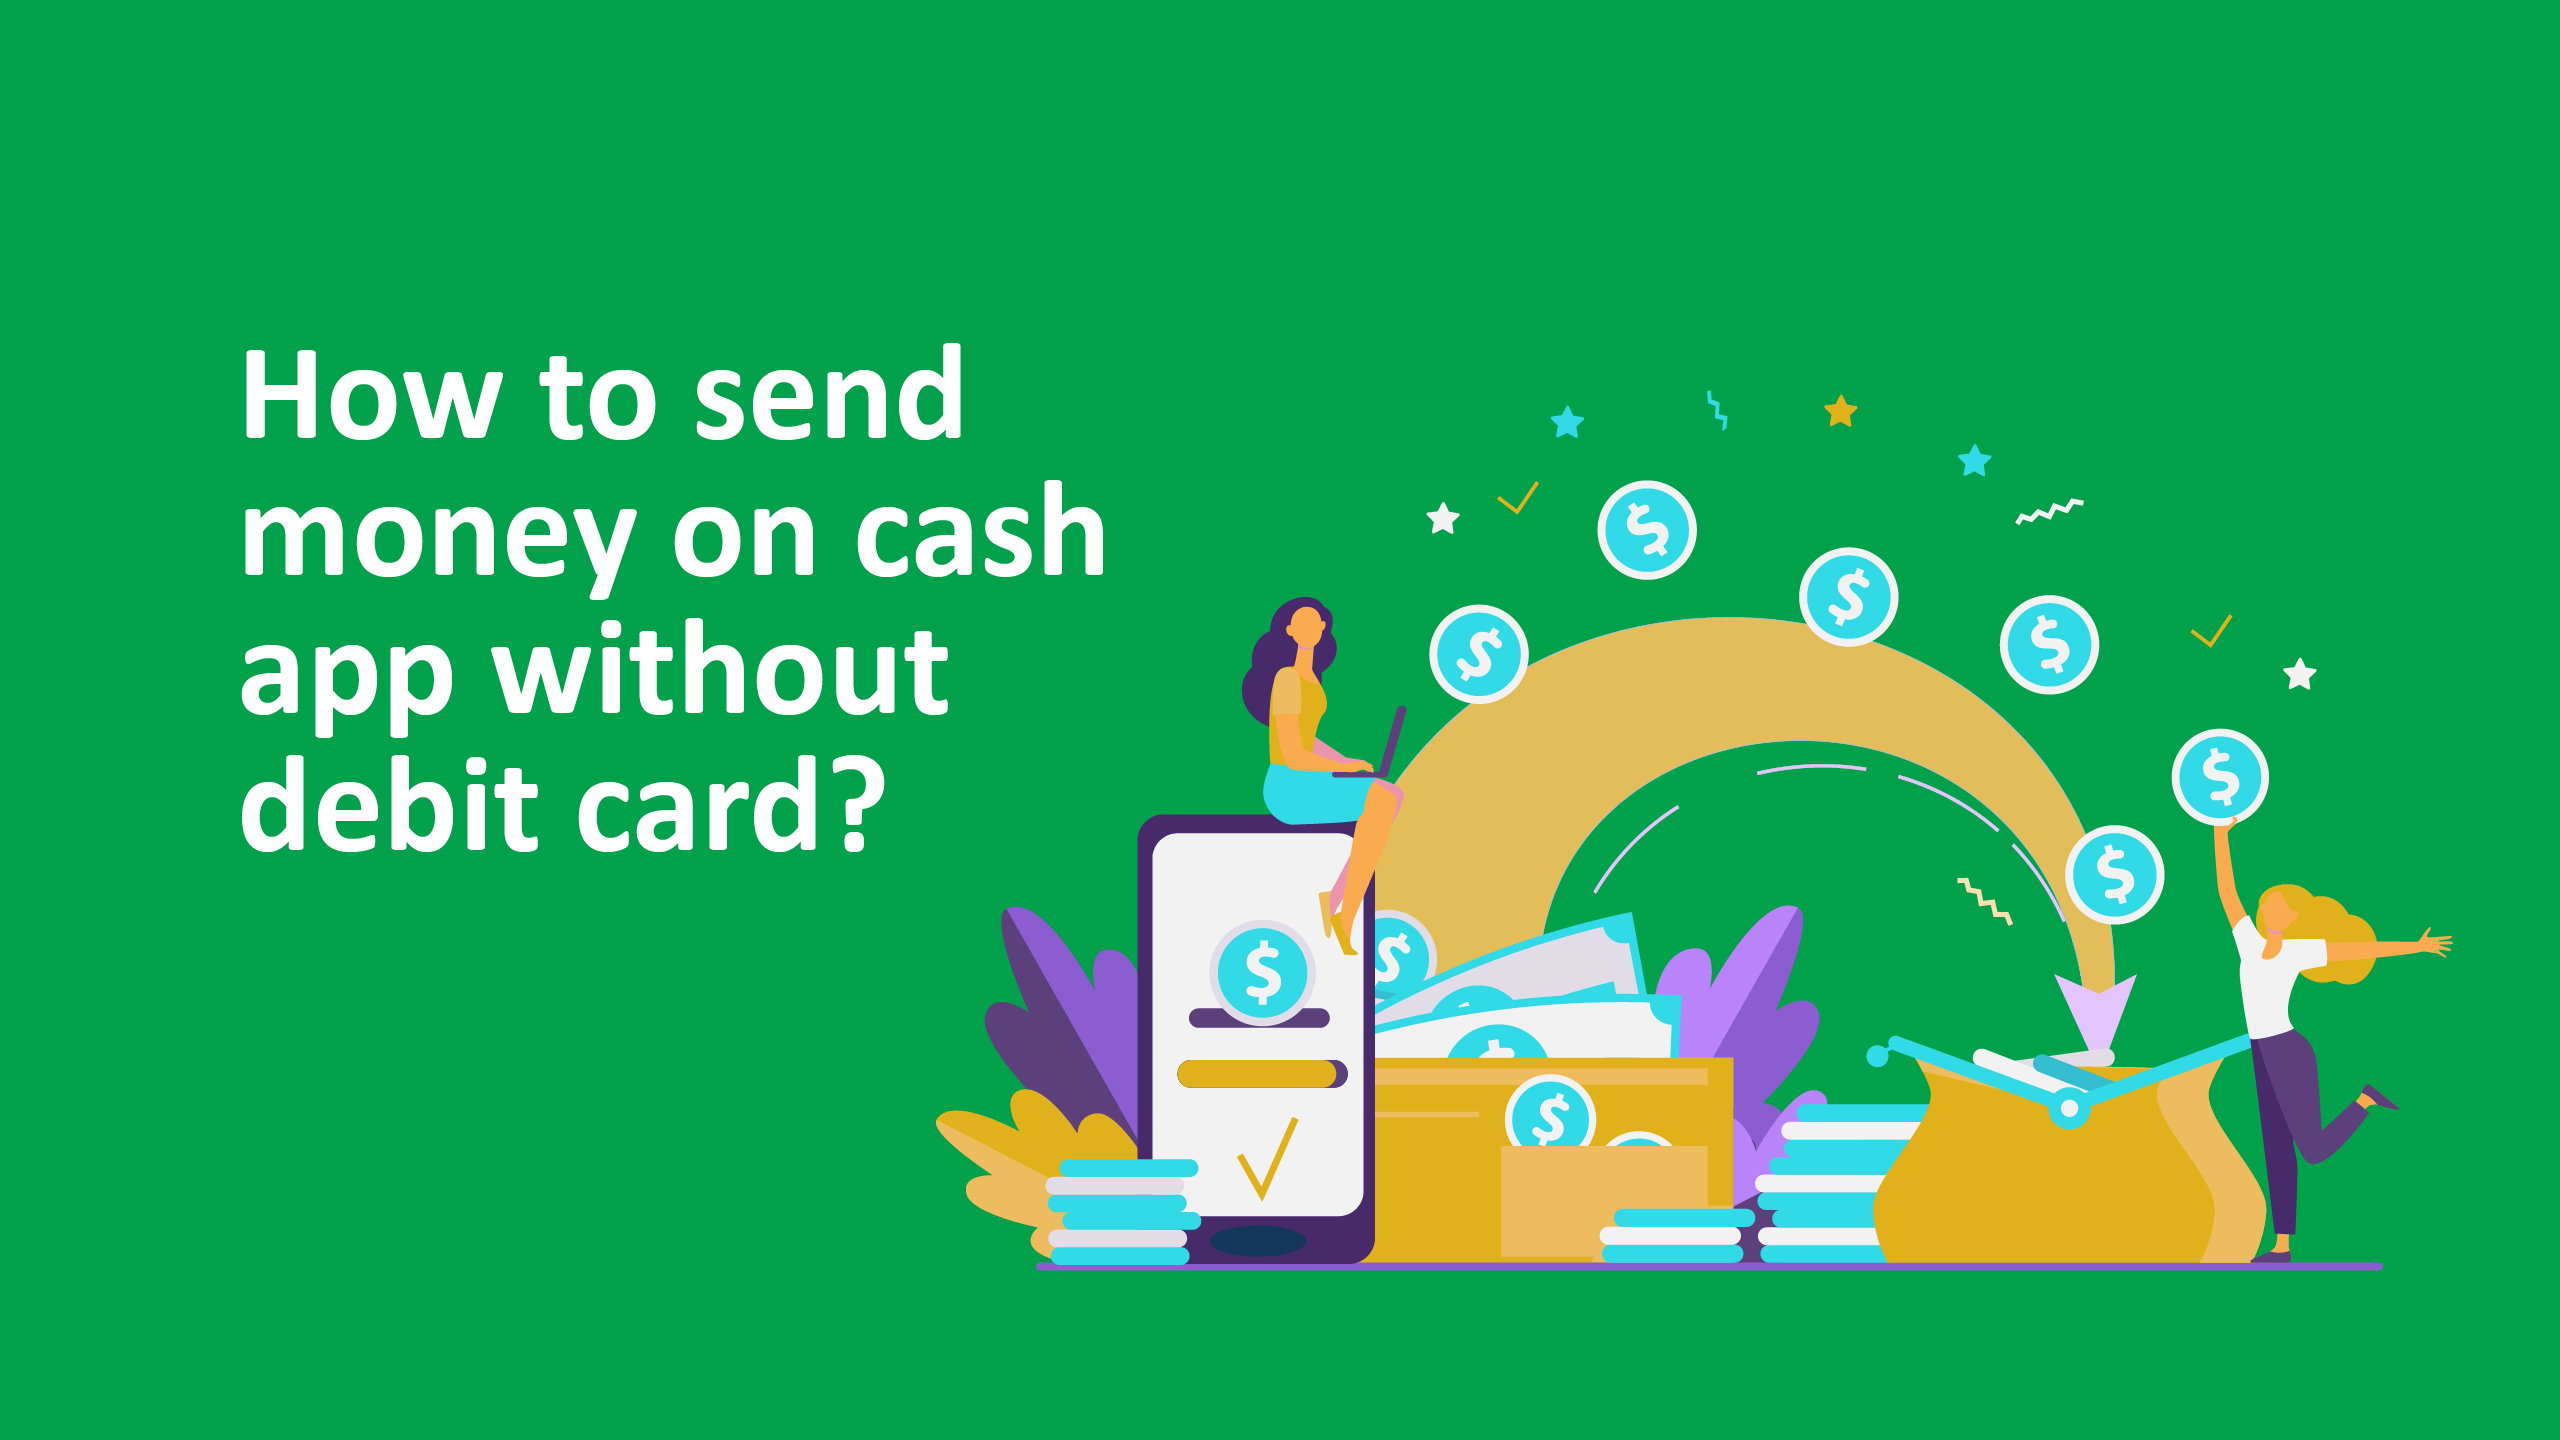 How To Send Money On Cash App Without A Debit Card